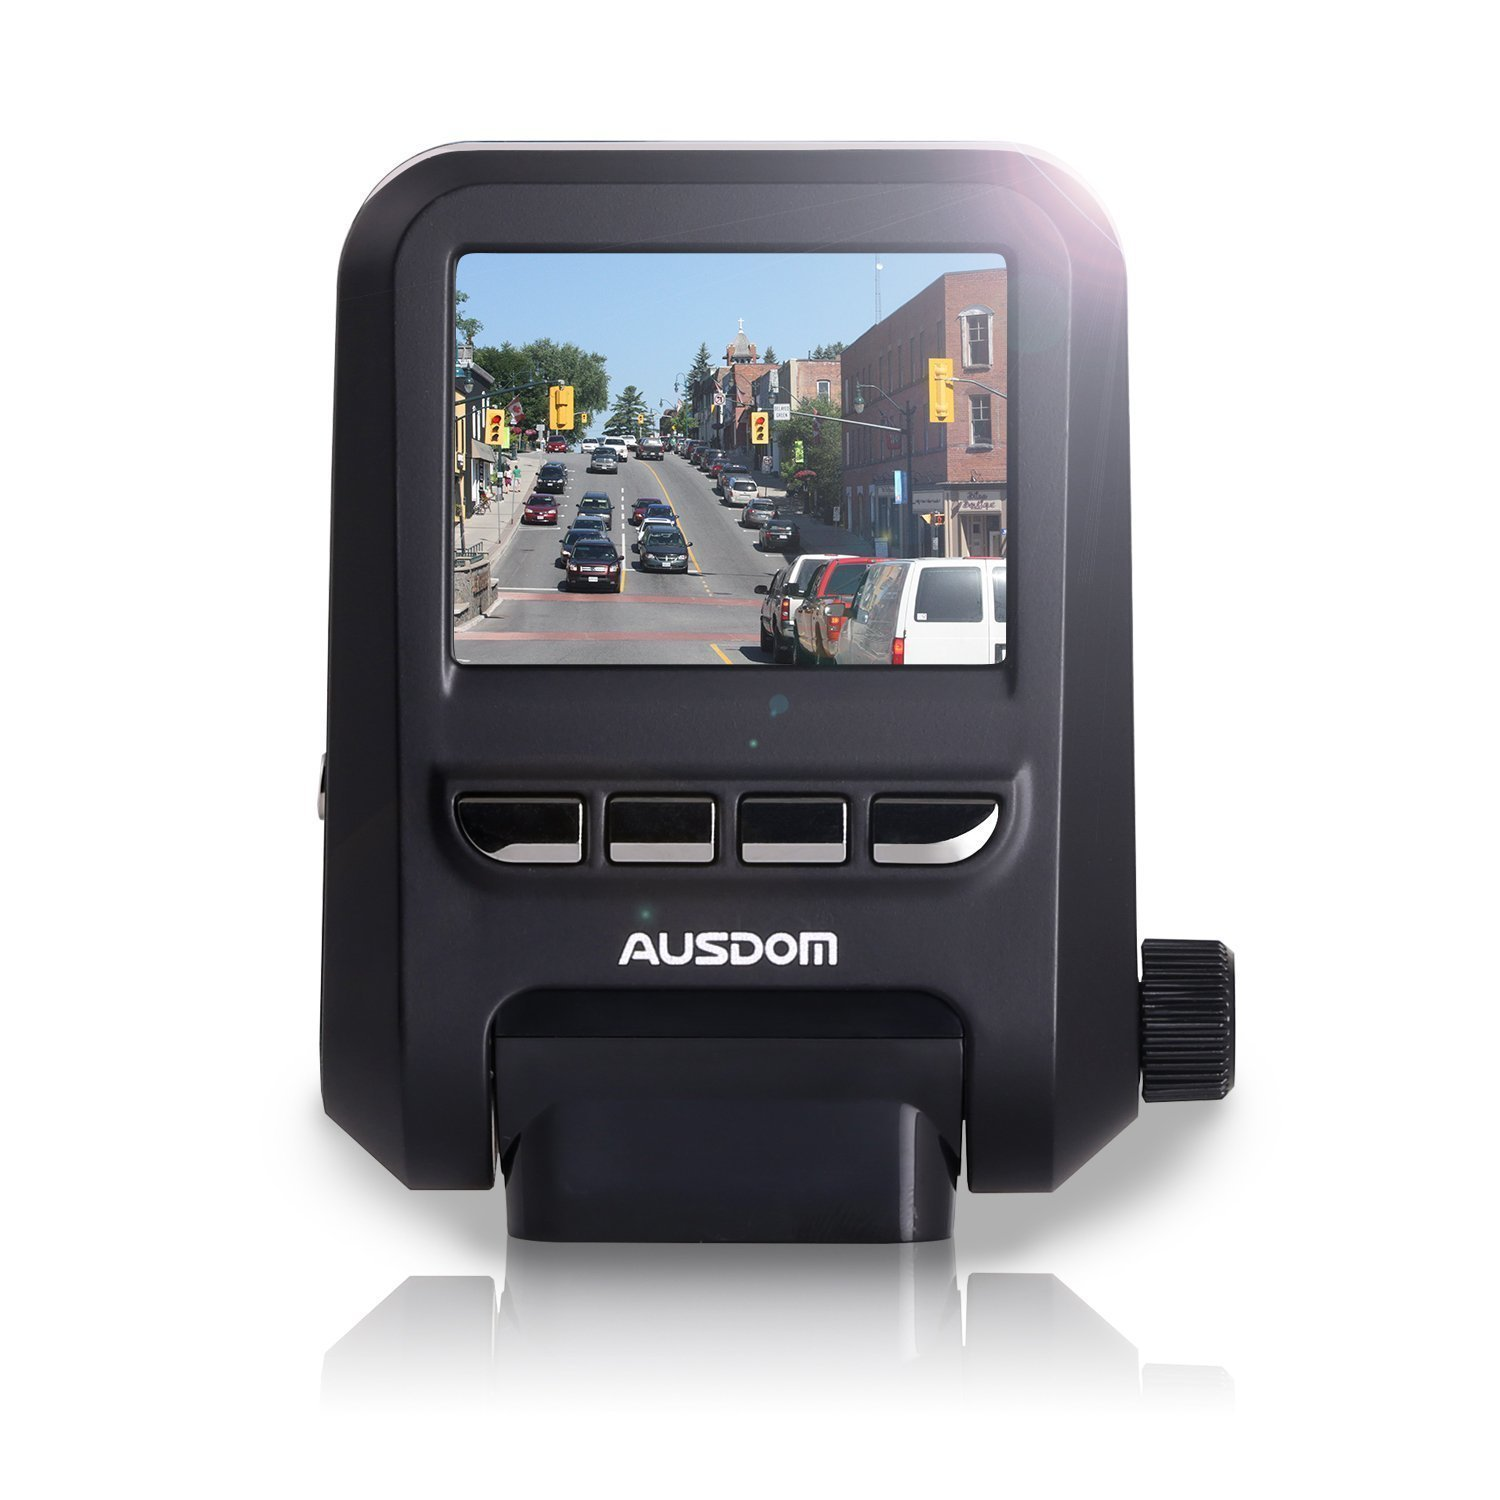 Ausdom AD118 Dashboard Camera Recorder with FHD 1080p Resolution, WDR, 6-Glass lenses, Motion Detection, Loop-Cycle Recording [並行輸入品]   B01NCR8LP2